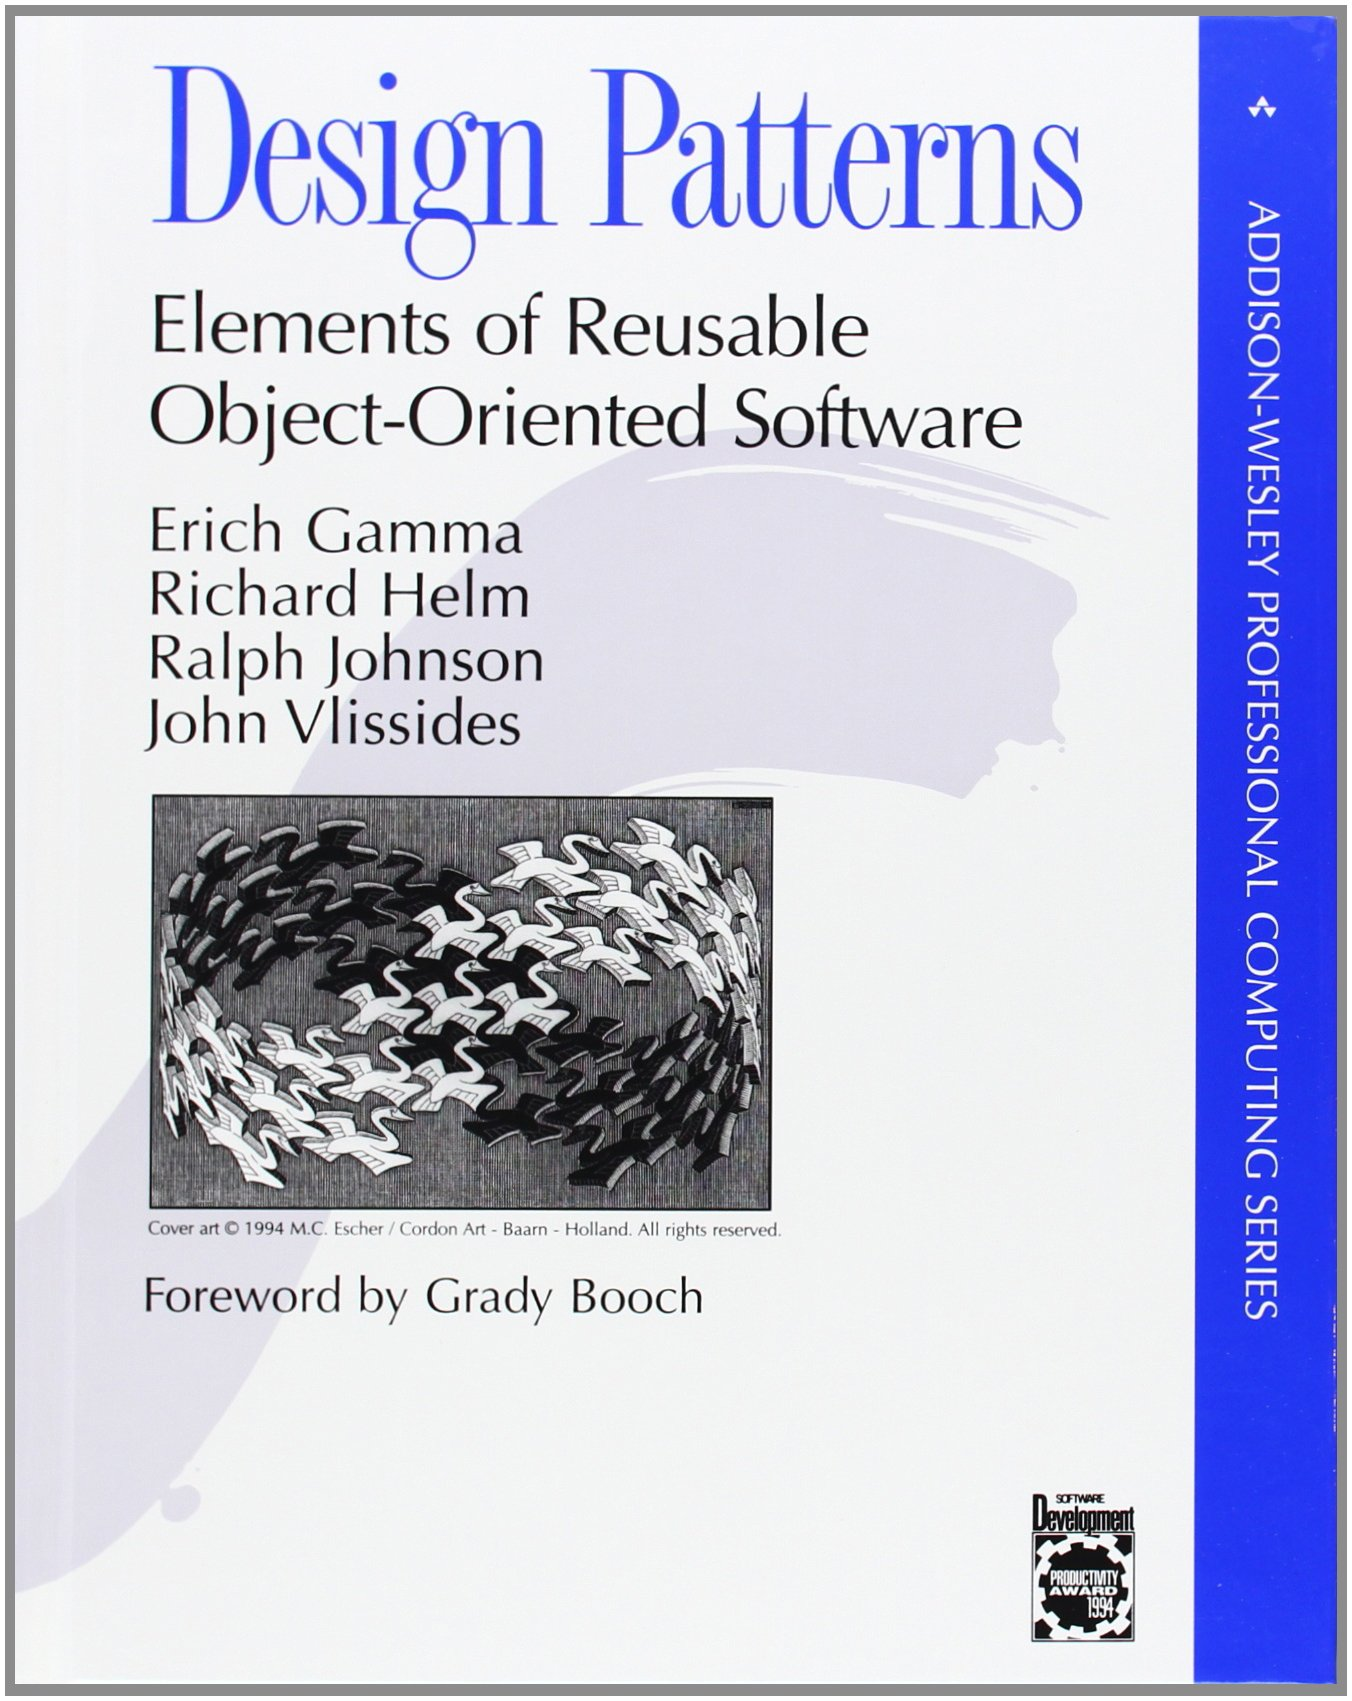 C# - Gang Of Four - Design Patterns, Elements Of Reusable Object Oriented Software